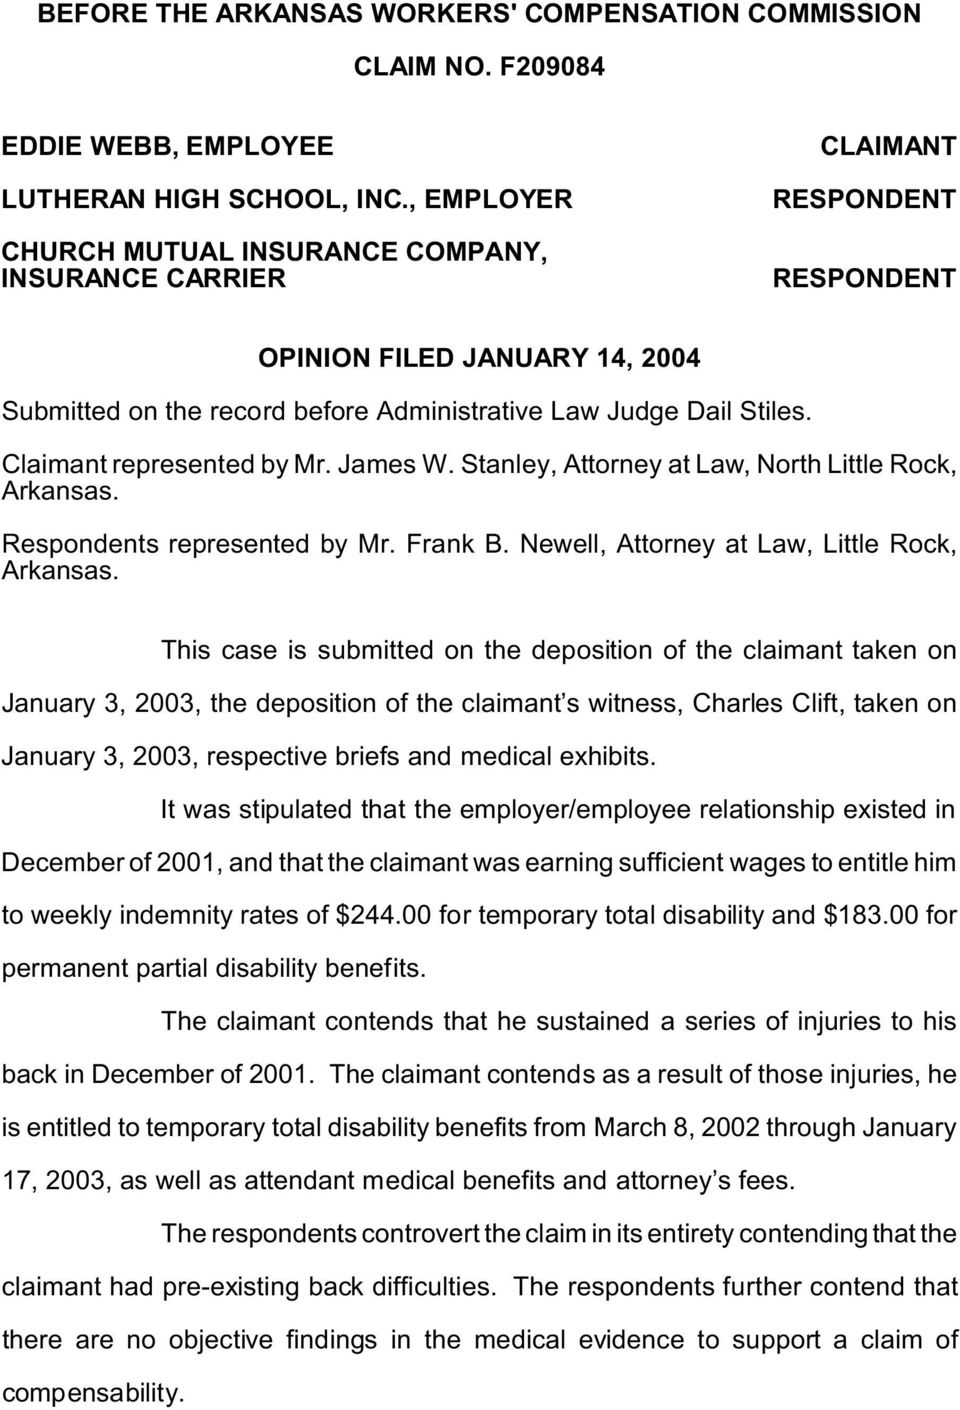 Claimant represented by Mr. James W. Stanley, Attorney at Law, North Little Rock, Arkansas. Respondents represented by Mr. Frank B. Newell, Attorney at Law, Little Rock, Arkansas.